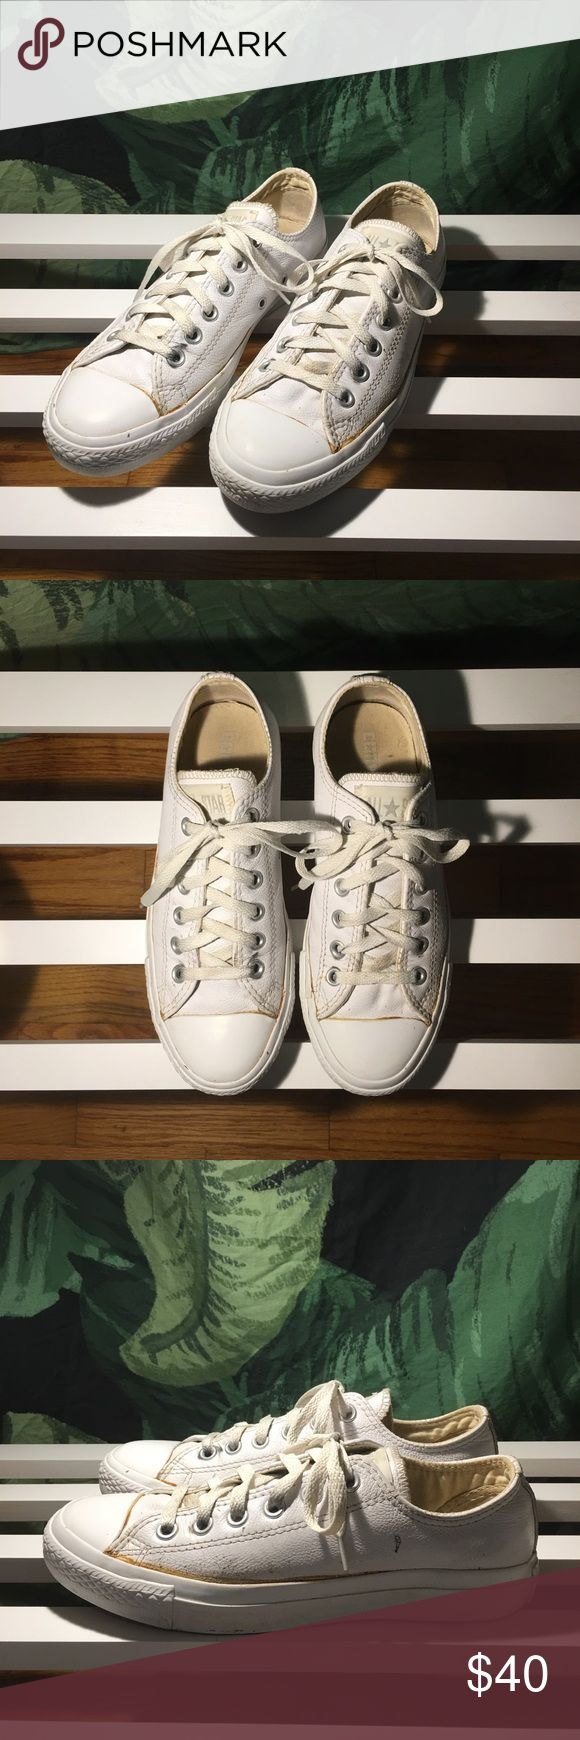 Converse Chuck Taylor - Leather All white full leather tennis shoes, custom made // fairly worn Converse Shoes Sneakers